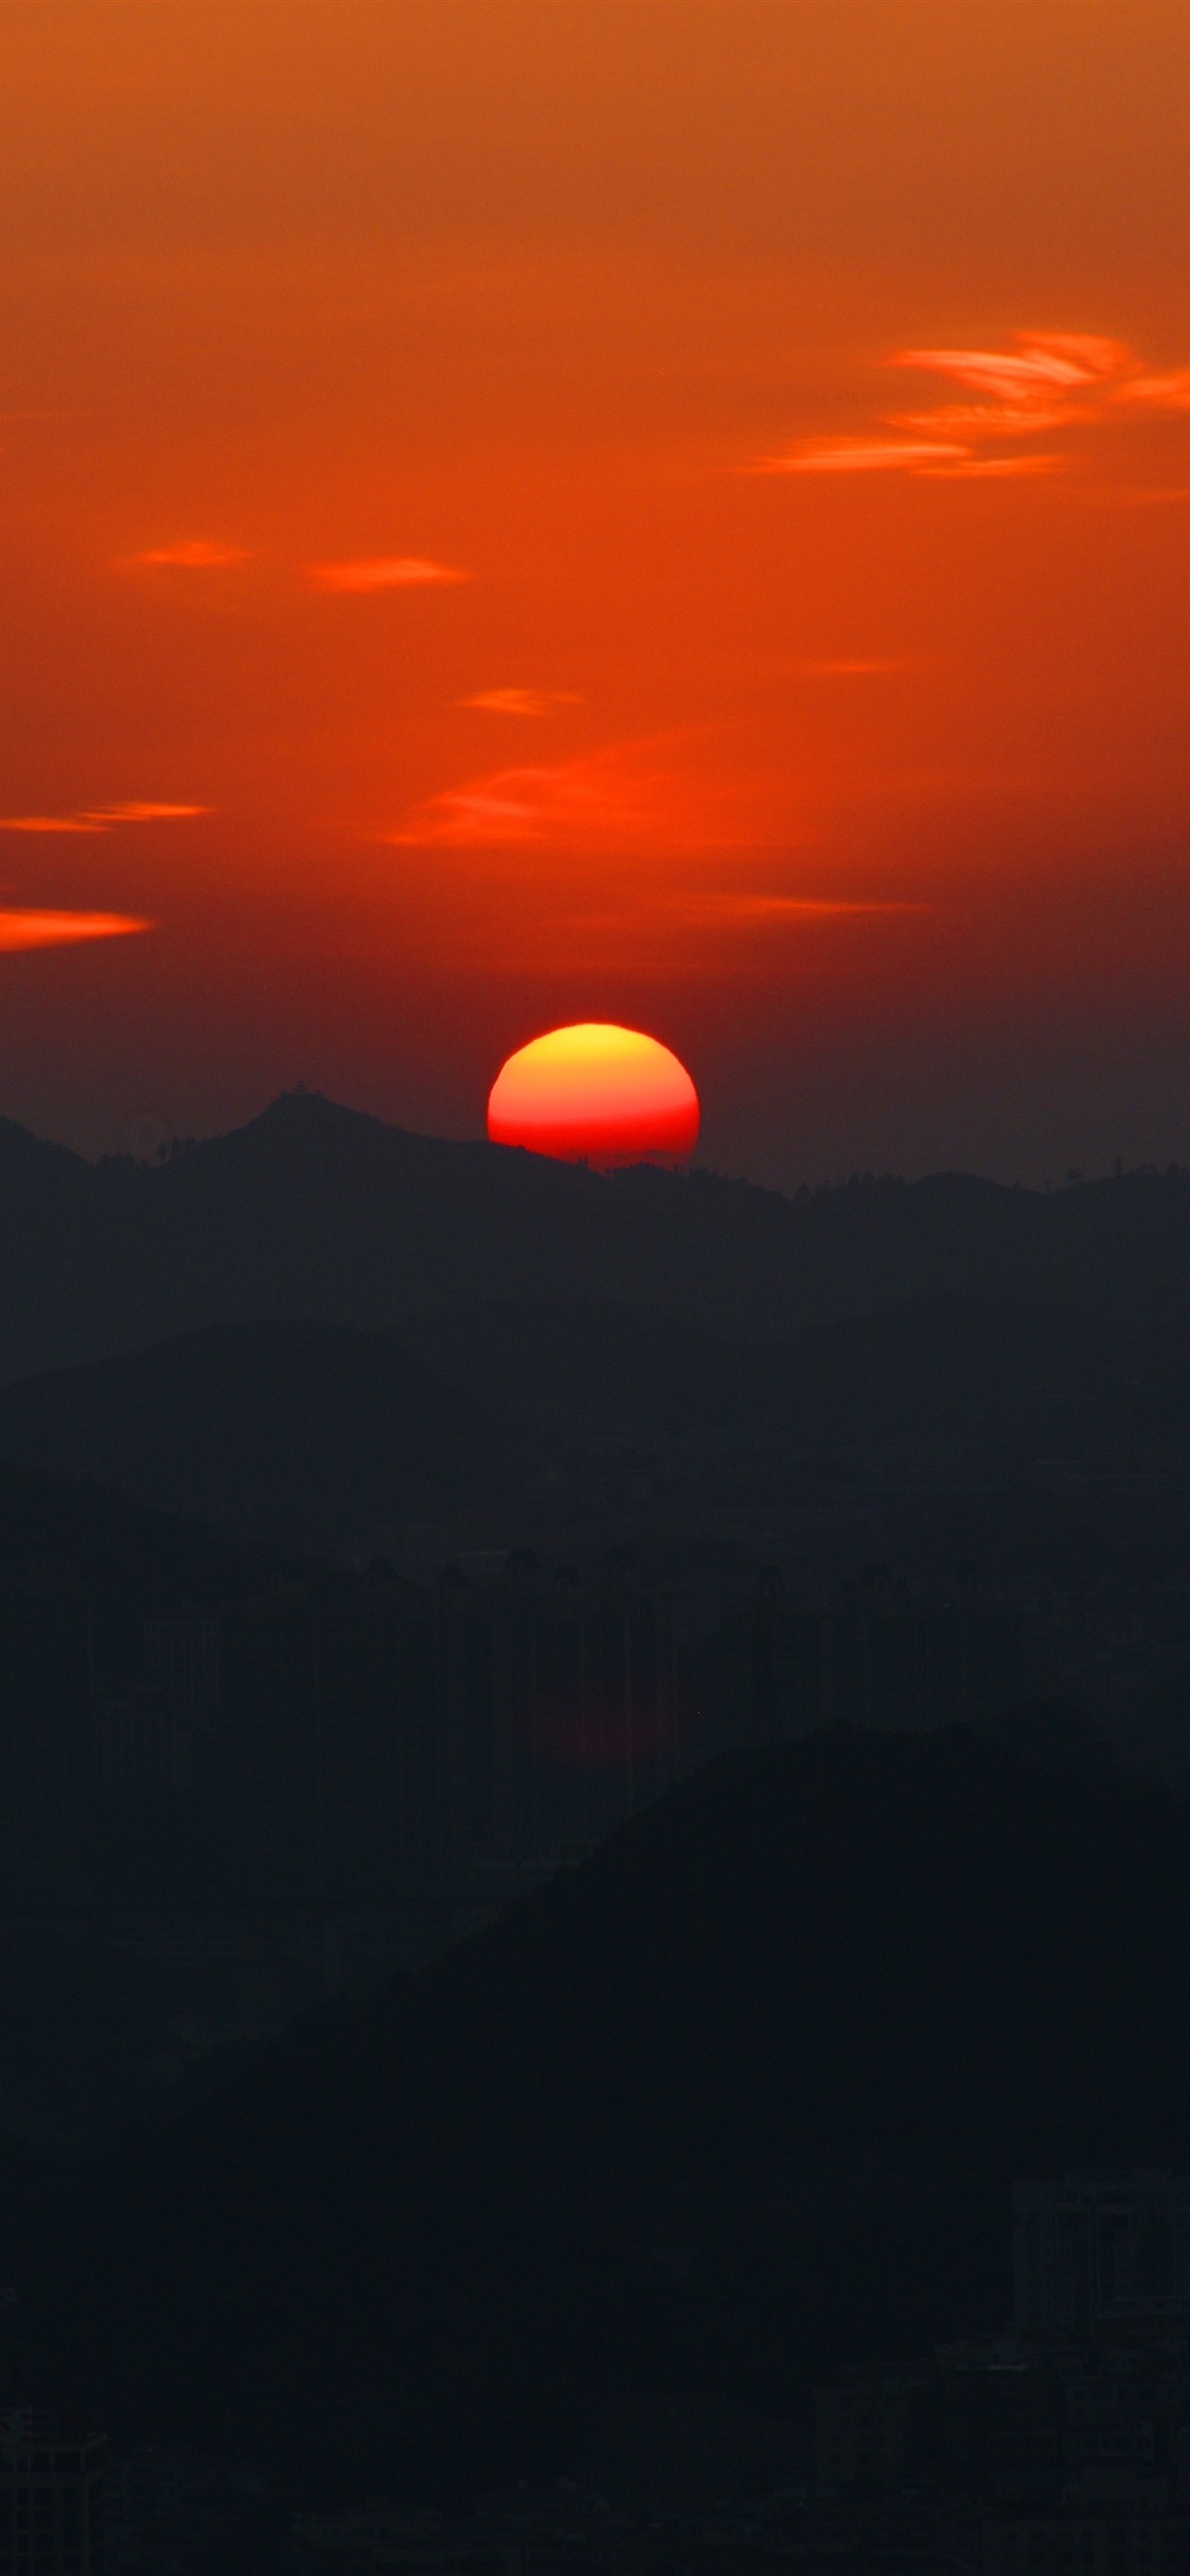 Beautiful Sunset Mountains Red Sun 1242x2688 Iphone 11 Pro Xs Max Wallpaper Background Picture Image